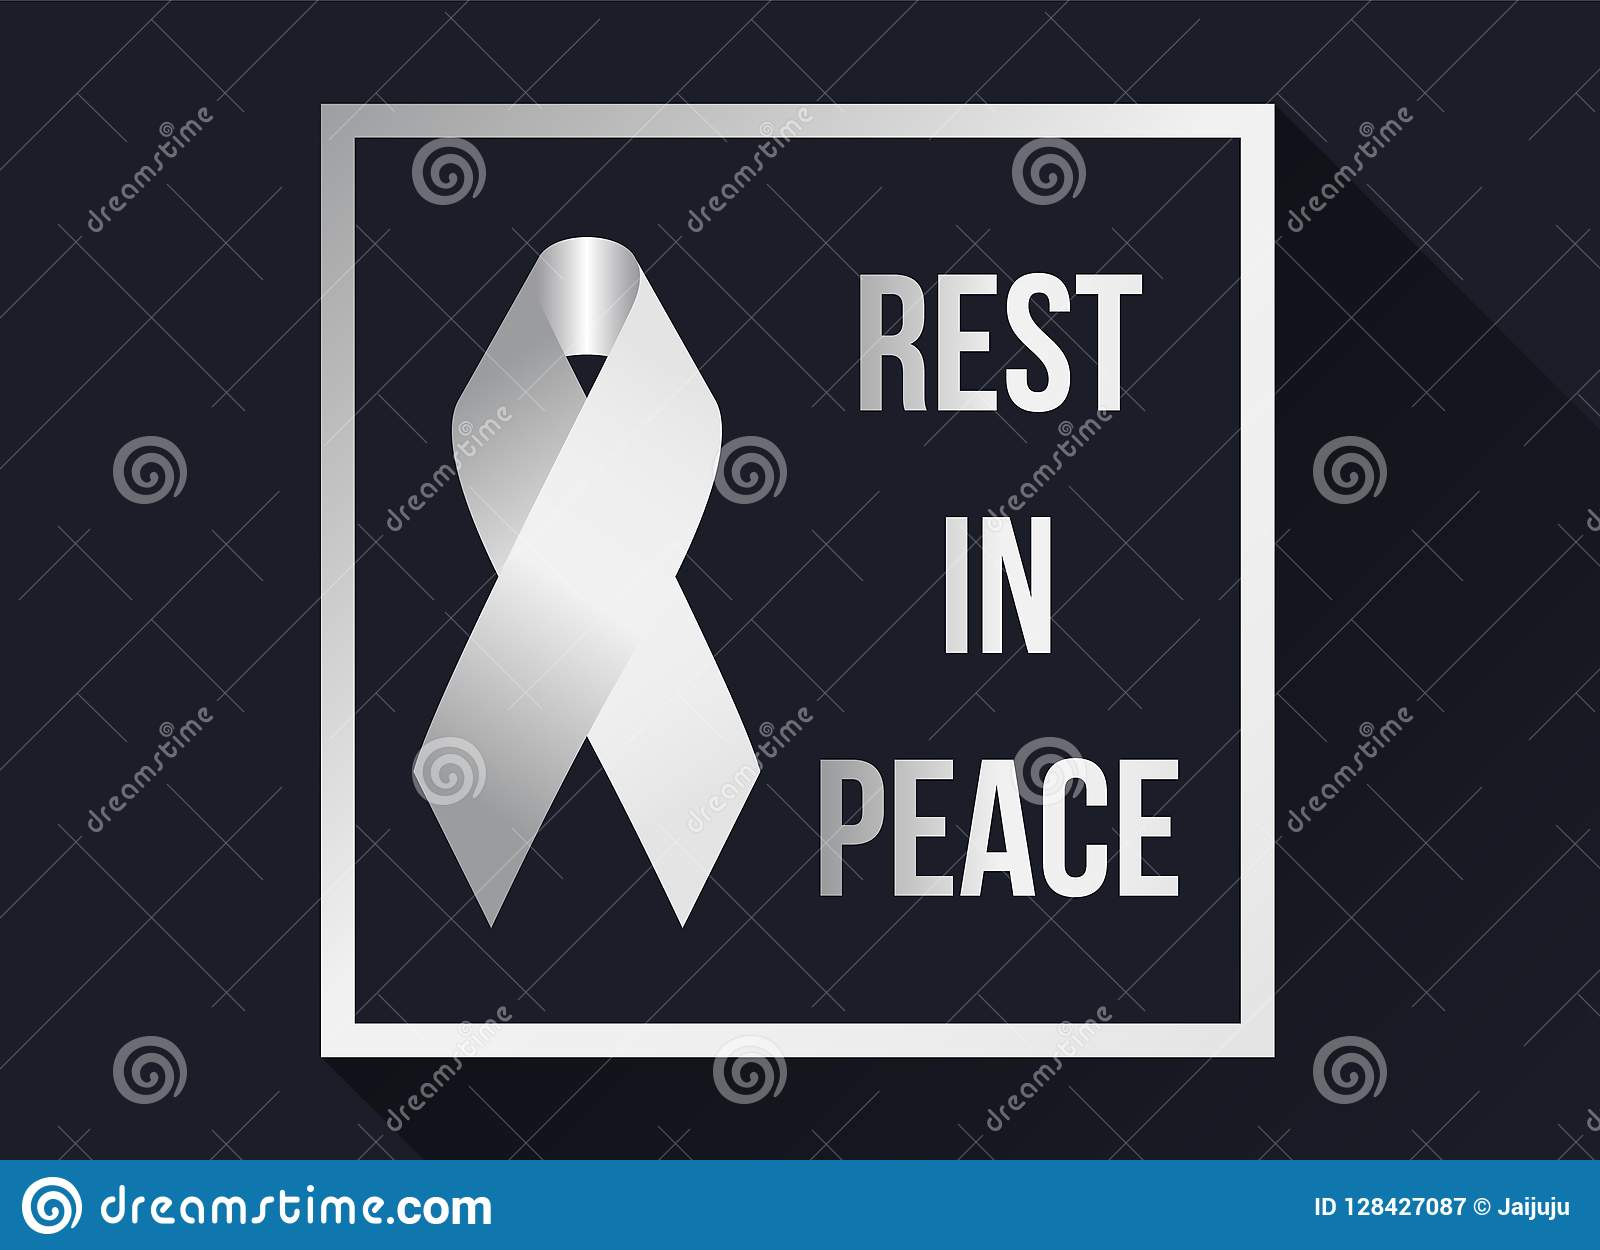 White Ribbon Sign And Rest In Peace Text In White Frame On Dark